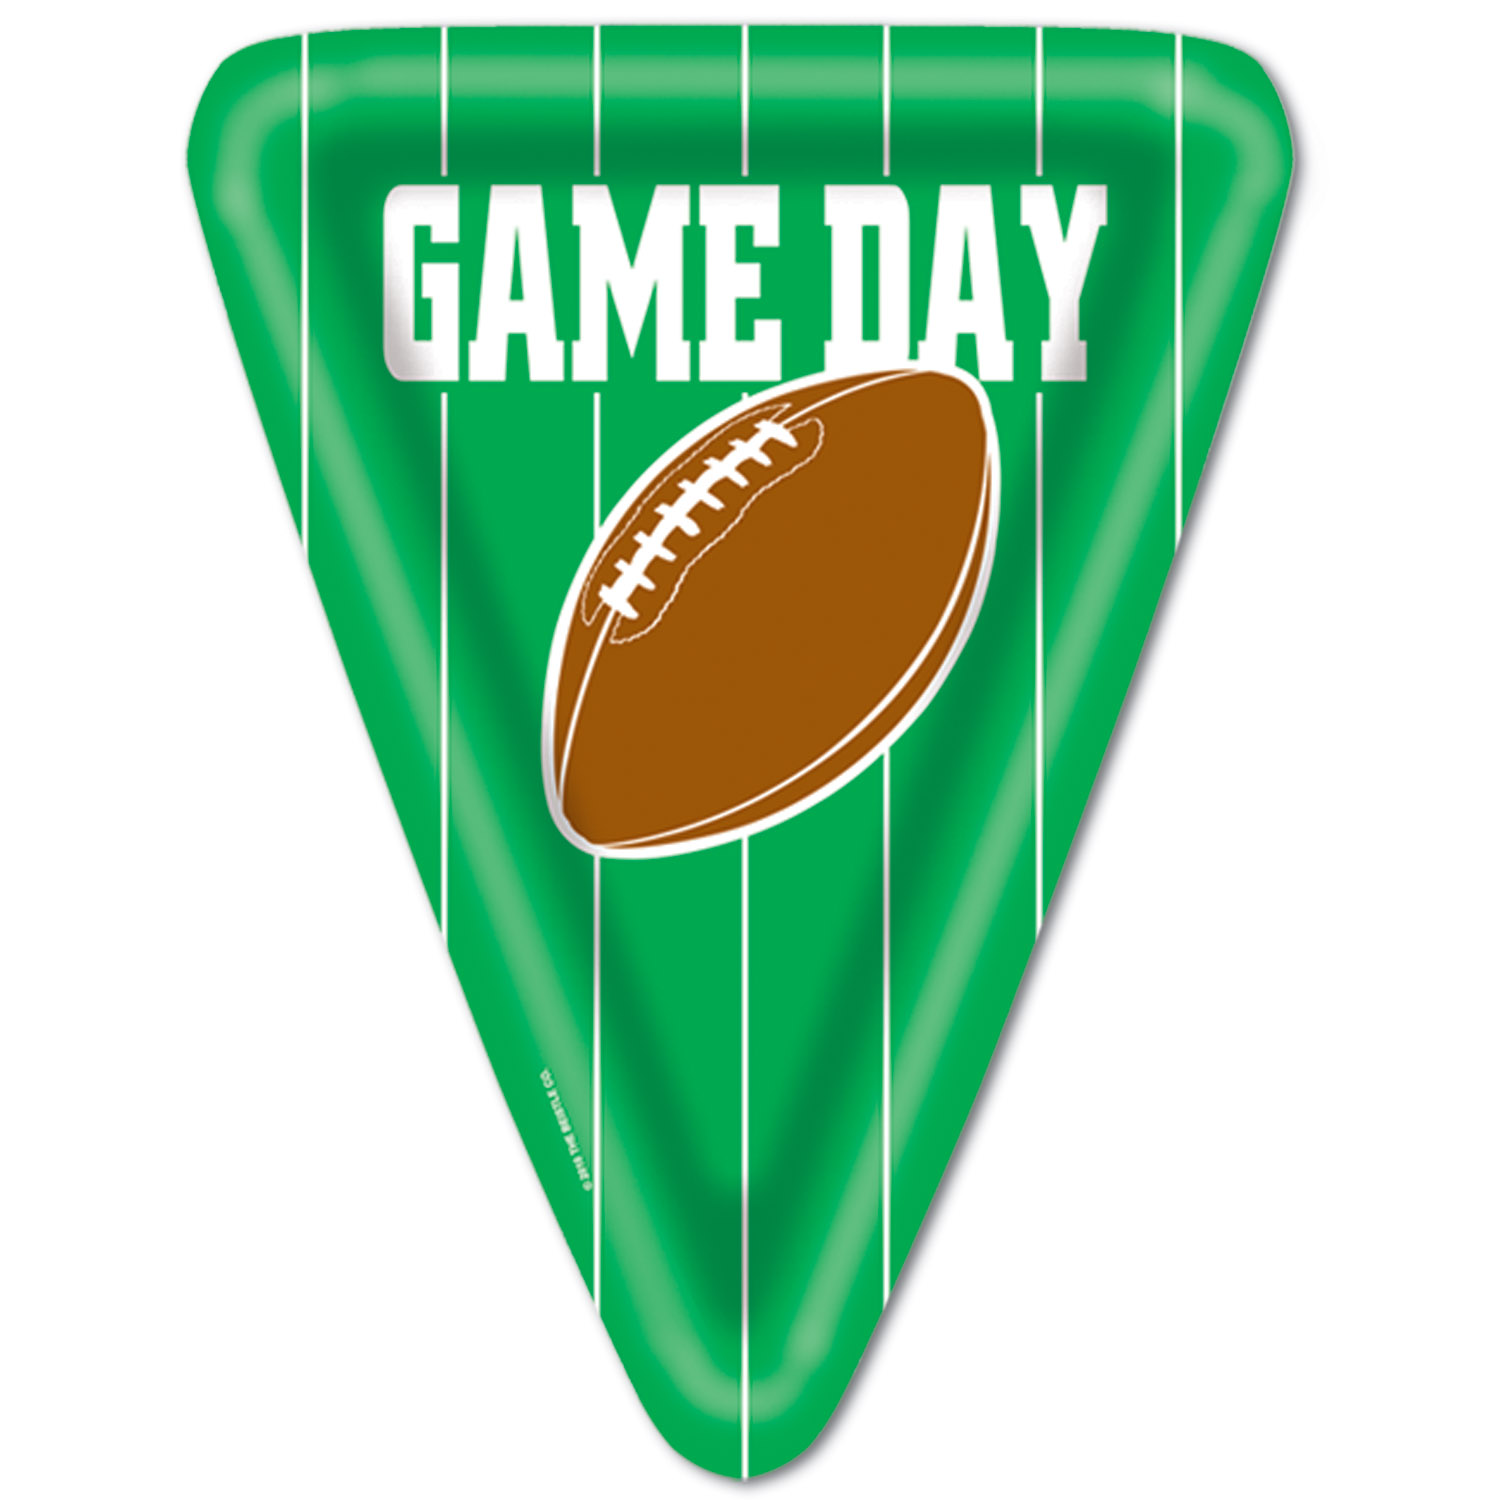 "Game Day Football Plates (Pack of 96) Football Plates, Game Day, Decorative Tableware, Triangle Shaped Plates, Pizza Plates, 10"" Plates, Wholesale party supplies, Inexpensive Plates, Football Plates, Cheap game day supplies"